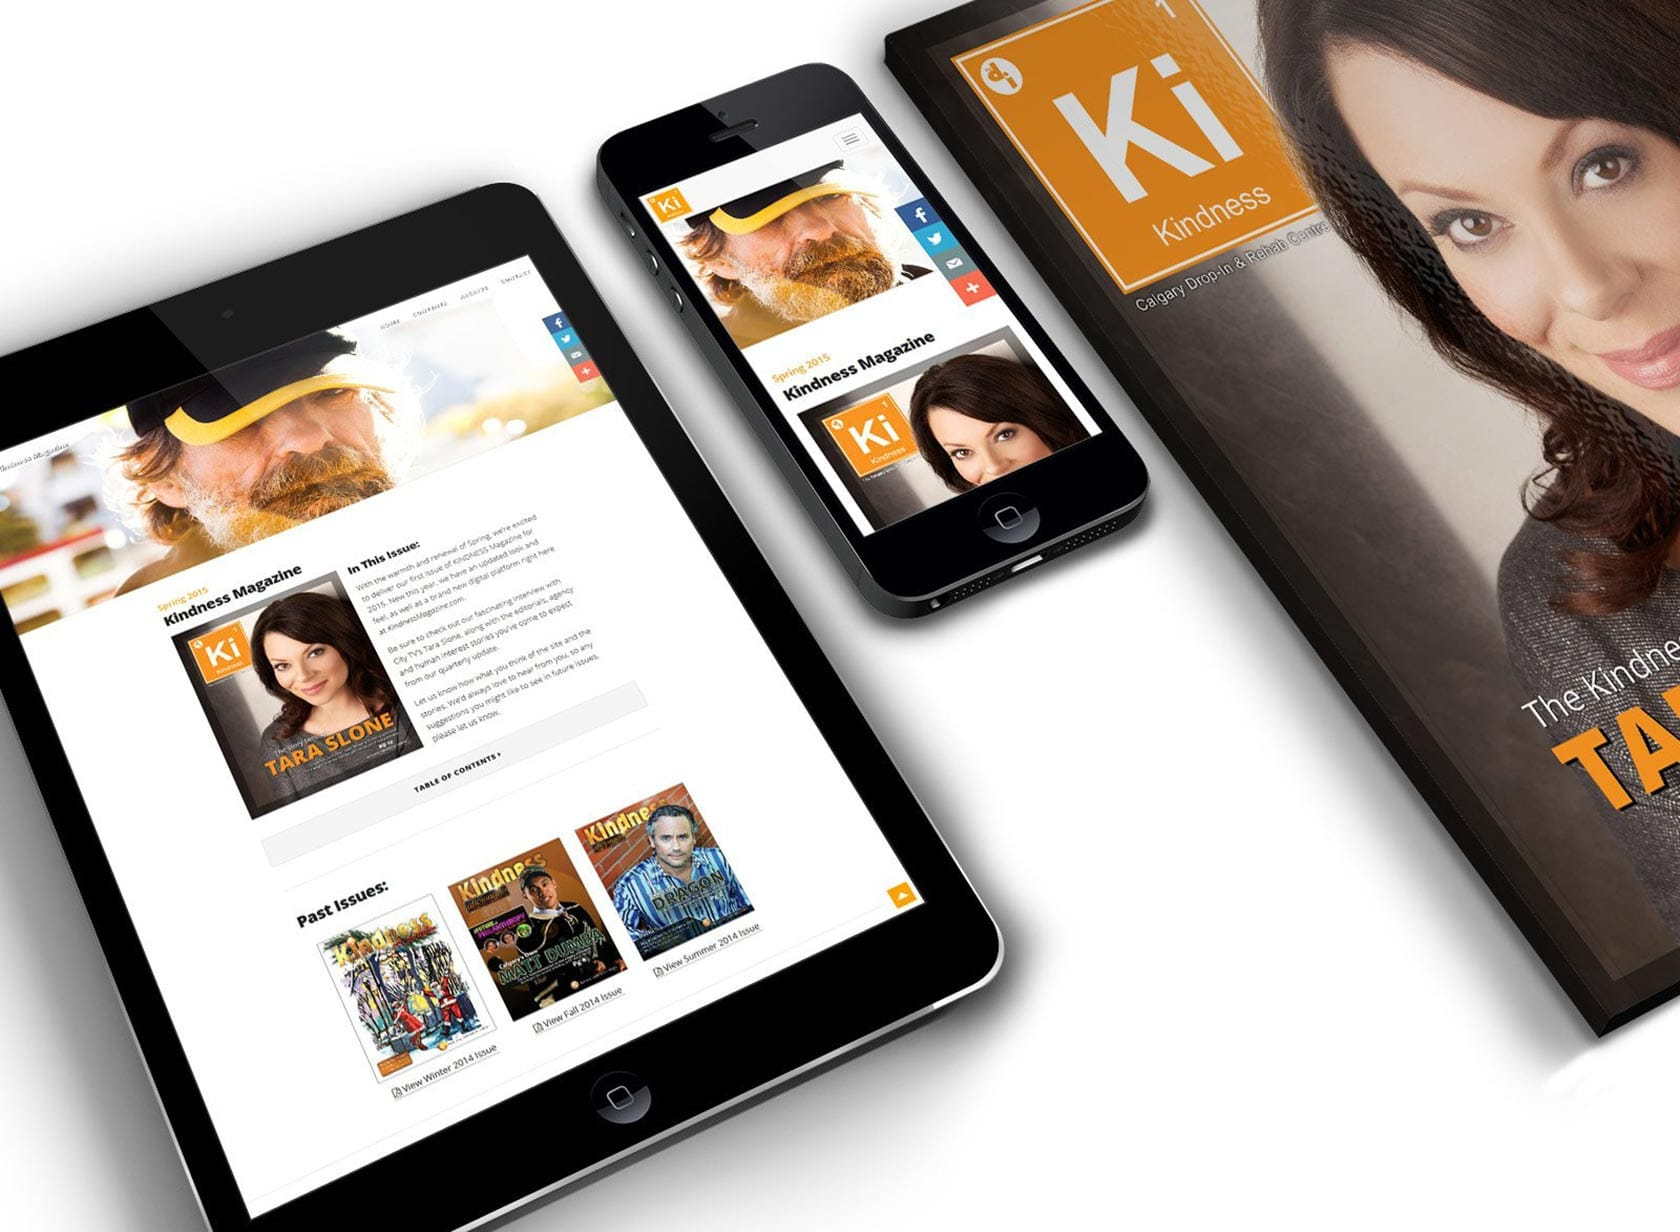 KM Project Image 01 - Newsletter Website Design - Magazine with Home Page, Mobile and Tablet Views